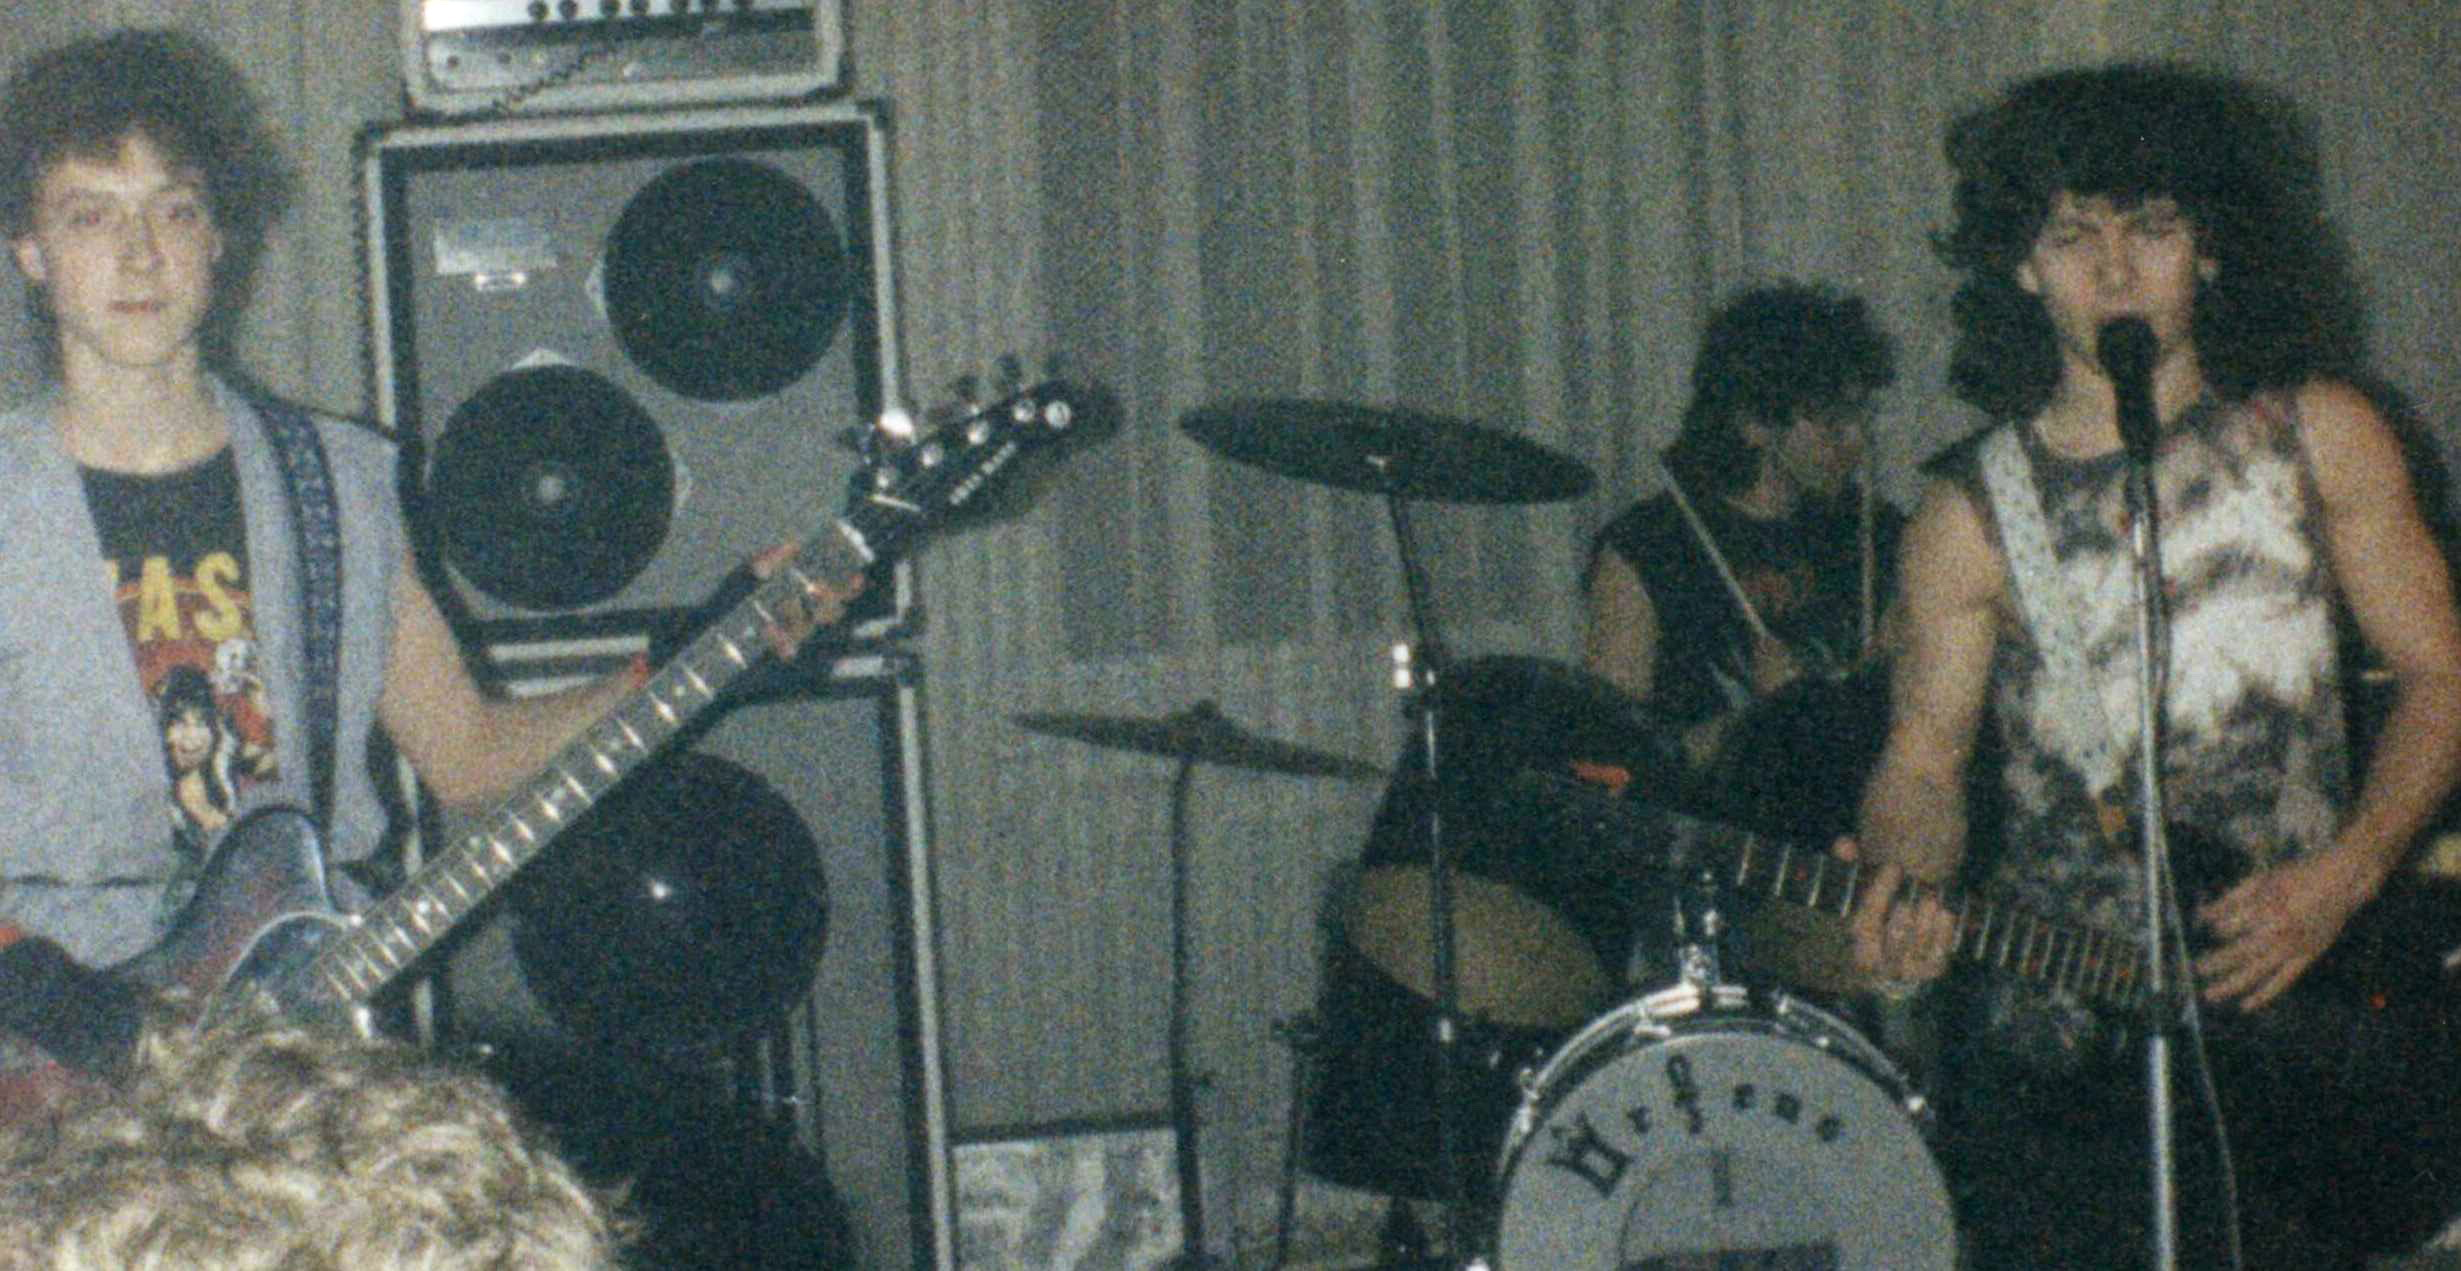 I sing and play on the guitar in the Decretum band. I am on the right side on the picture. In 1990.